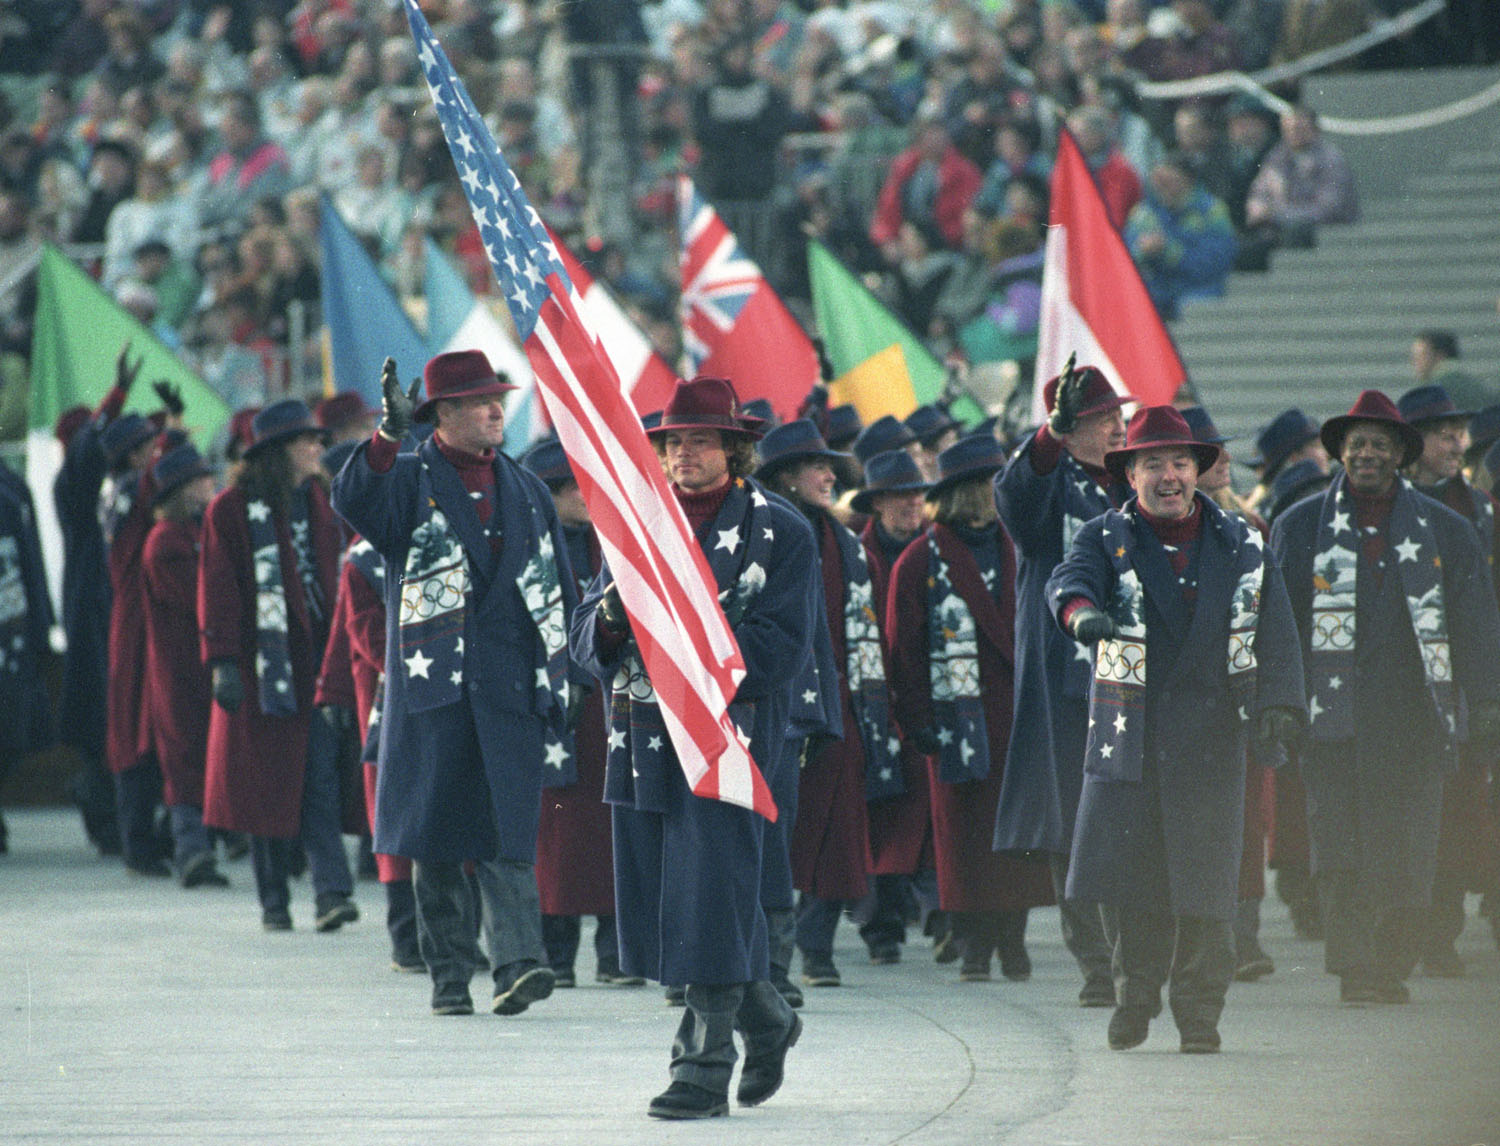 American cross country skier Bill Koch carries the American flag at the beginning of the the 1992 WInter Olympics in  Albertville, France.